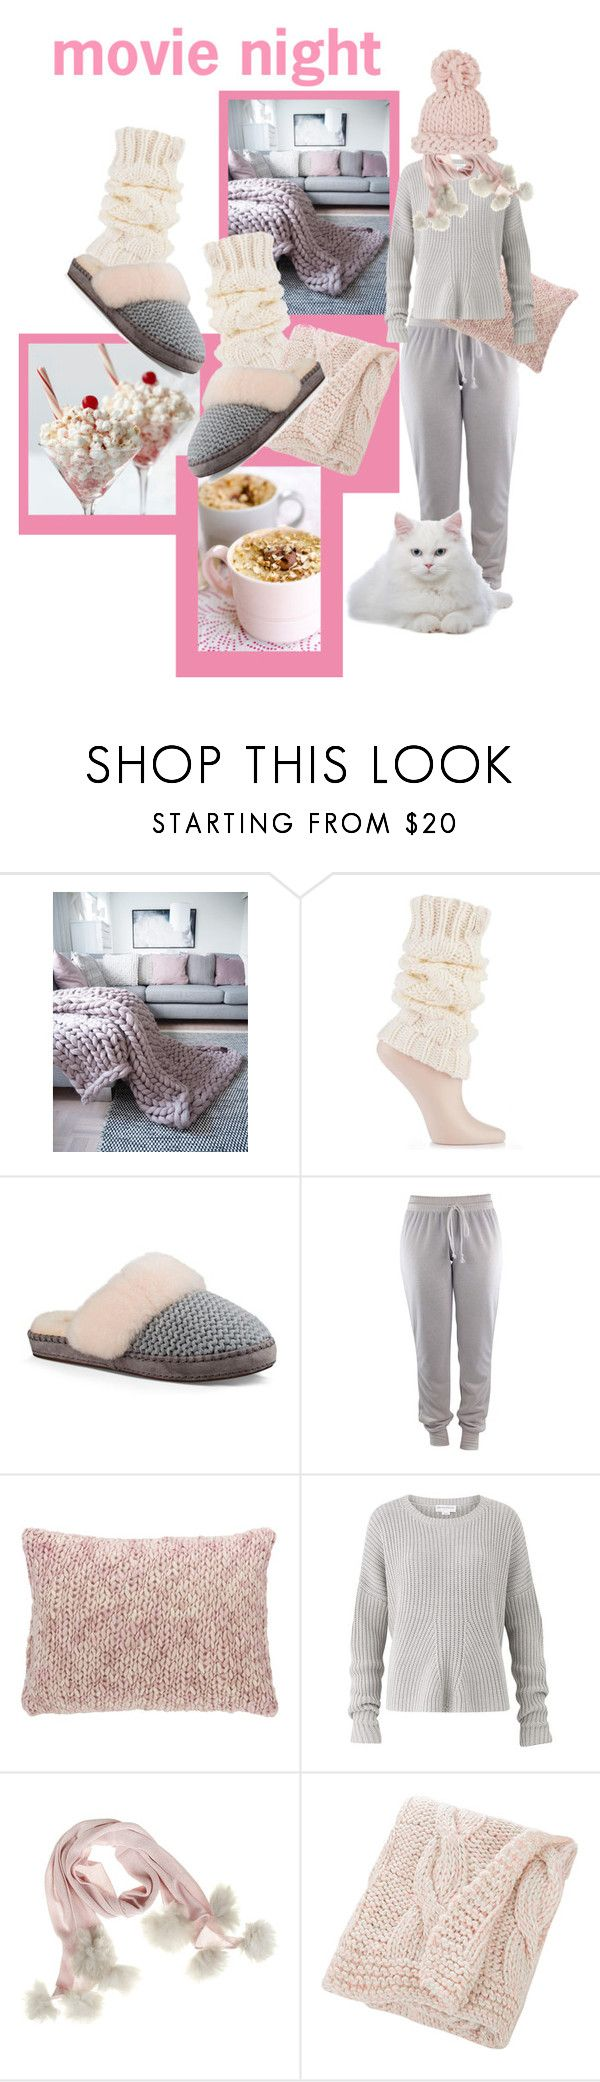 """""""Bring The Popcorn: Movie Night!"""" by lheijl ❤ liked on Polyvore featuring Wilton, UGG, Pine Cone Hill, Amanda Wakeley, Samantha Holmes, Bloomingville and Barneys New York"""